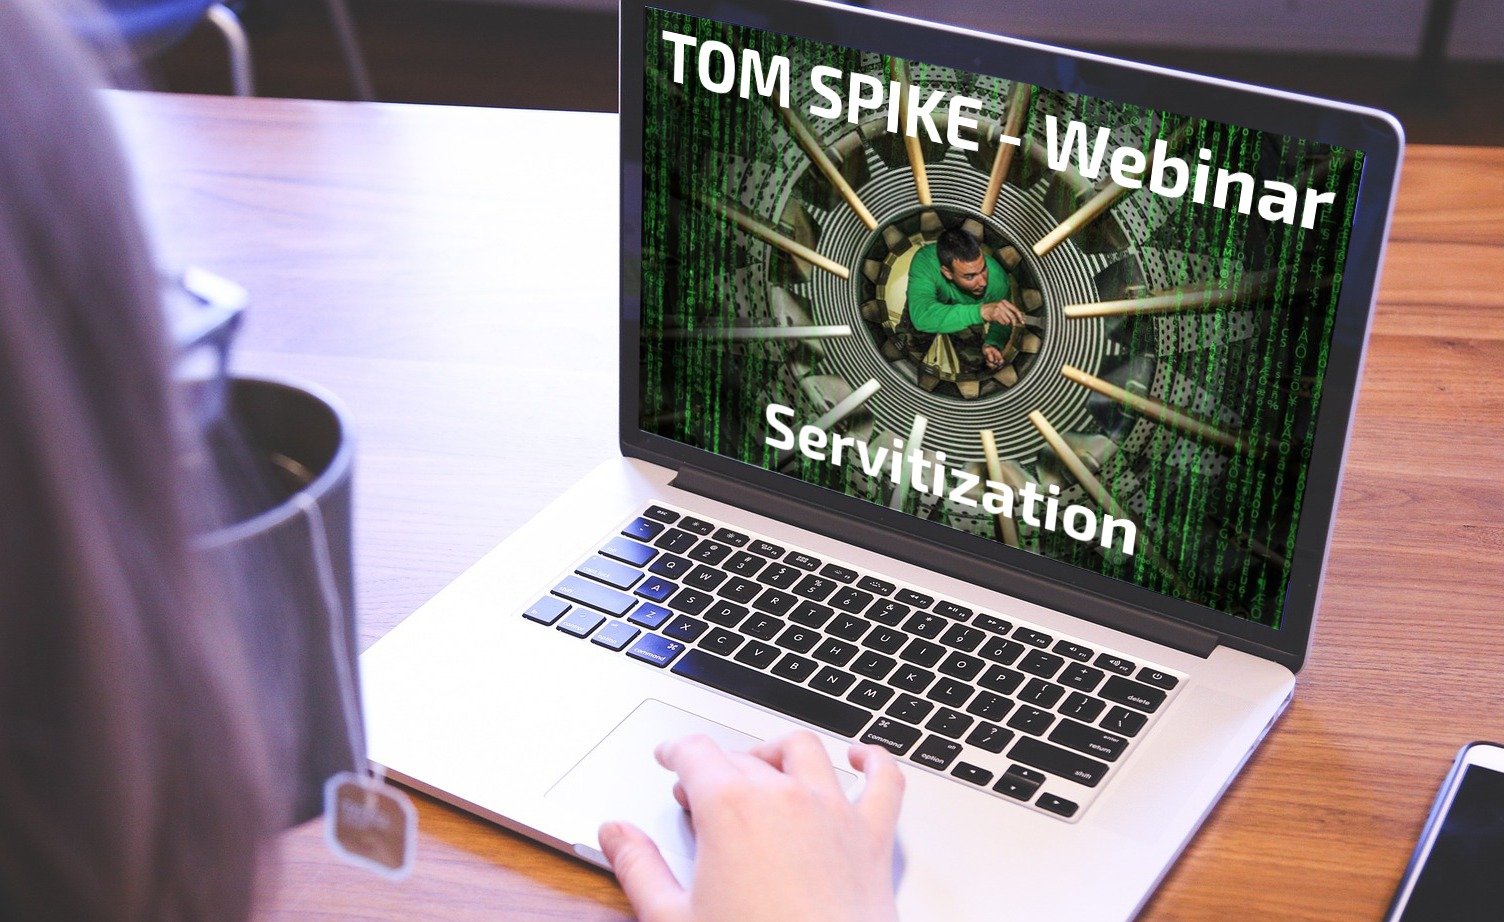 TOM SPIKE - Structured innovation - Webinar - Servitization